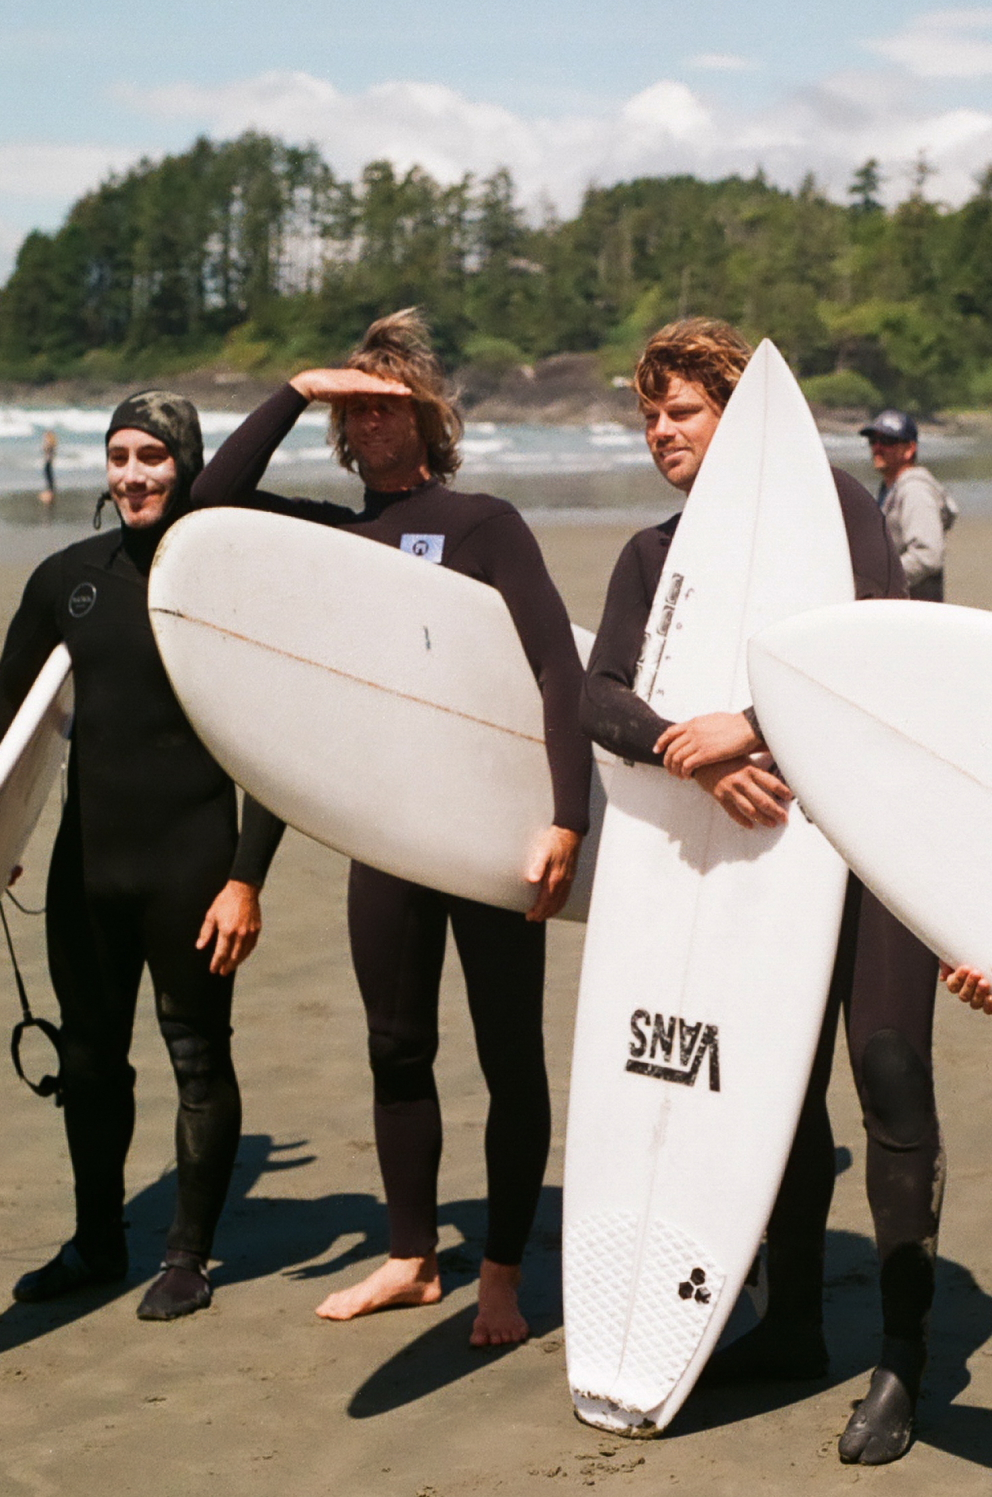 DISPATCH_STAYWILD_TOFINO38.JPG